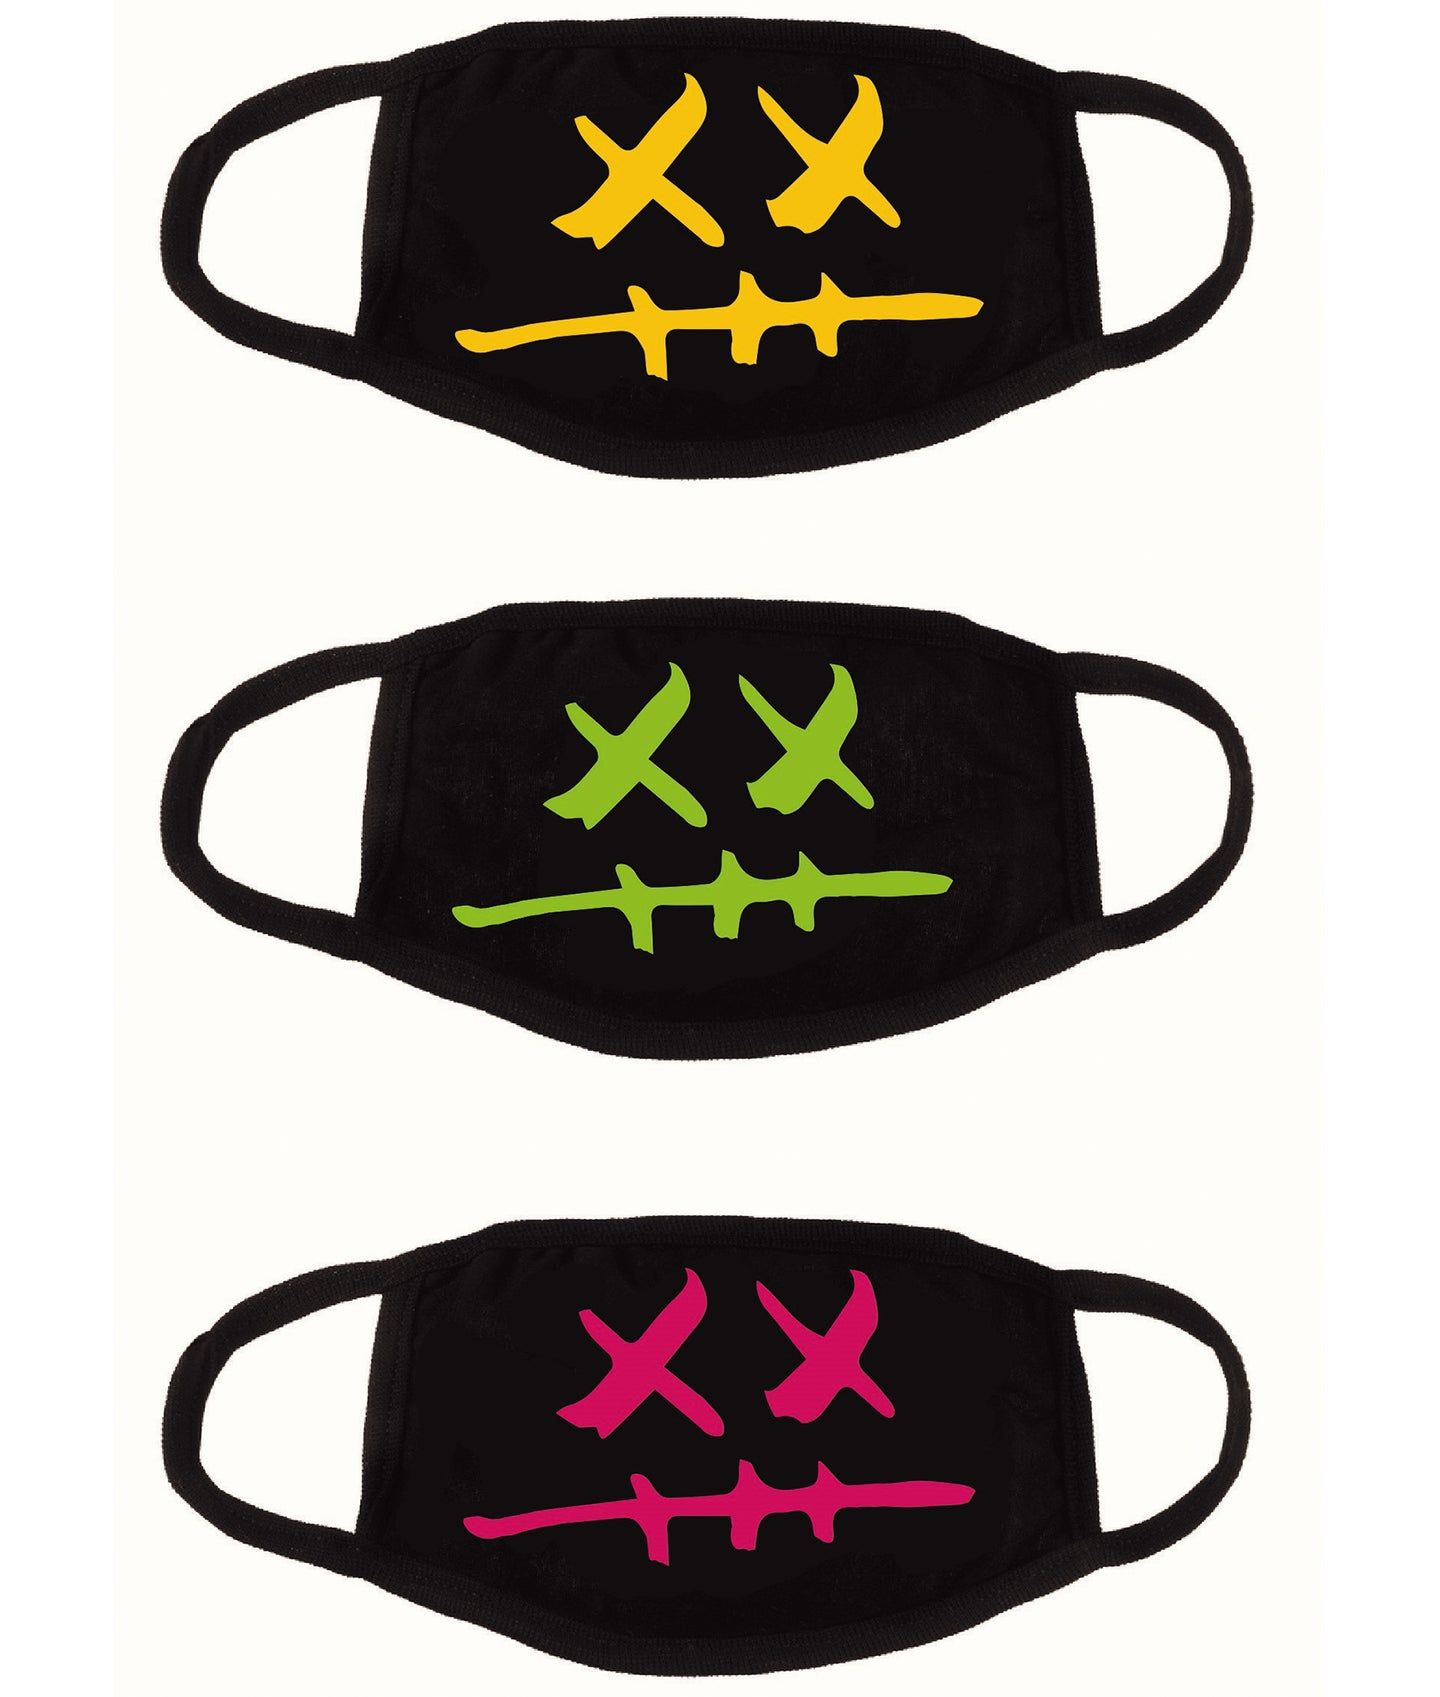 CULT XX REUSEABLE FACE MASK 3 PACK (YELLOW, GREEN, MAGENTA)